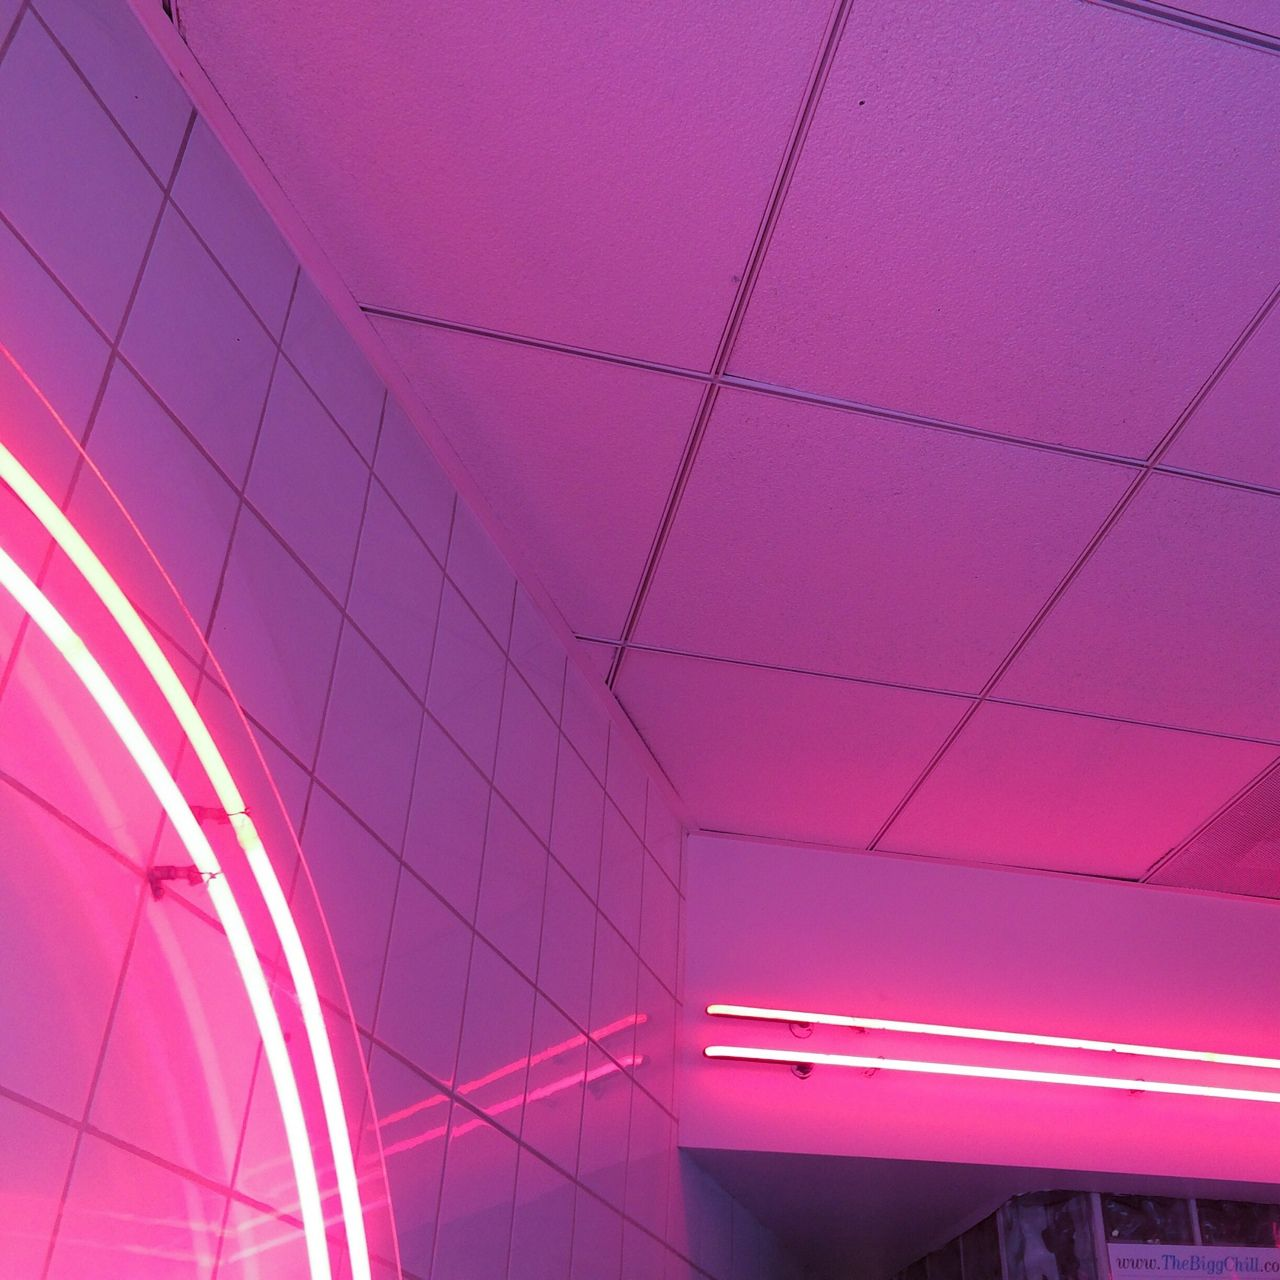 Sleazeburger Neon Aesthetic Purple Aesthetic Neon